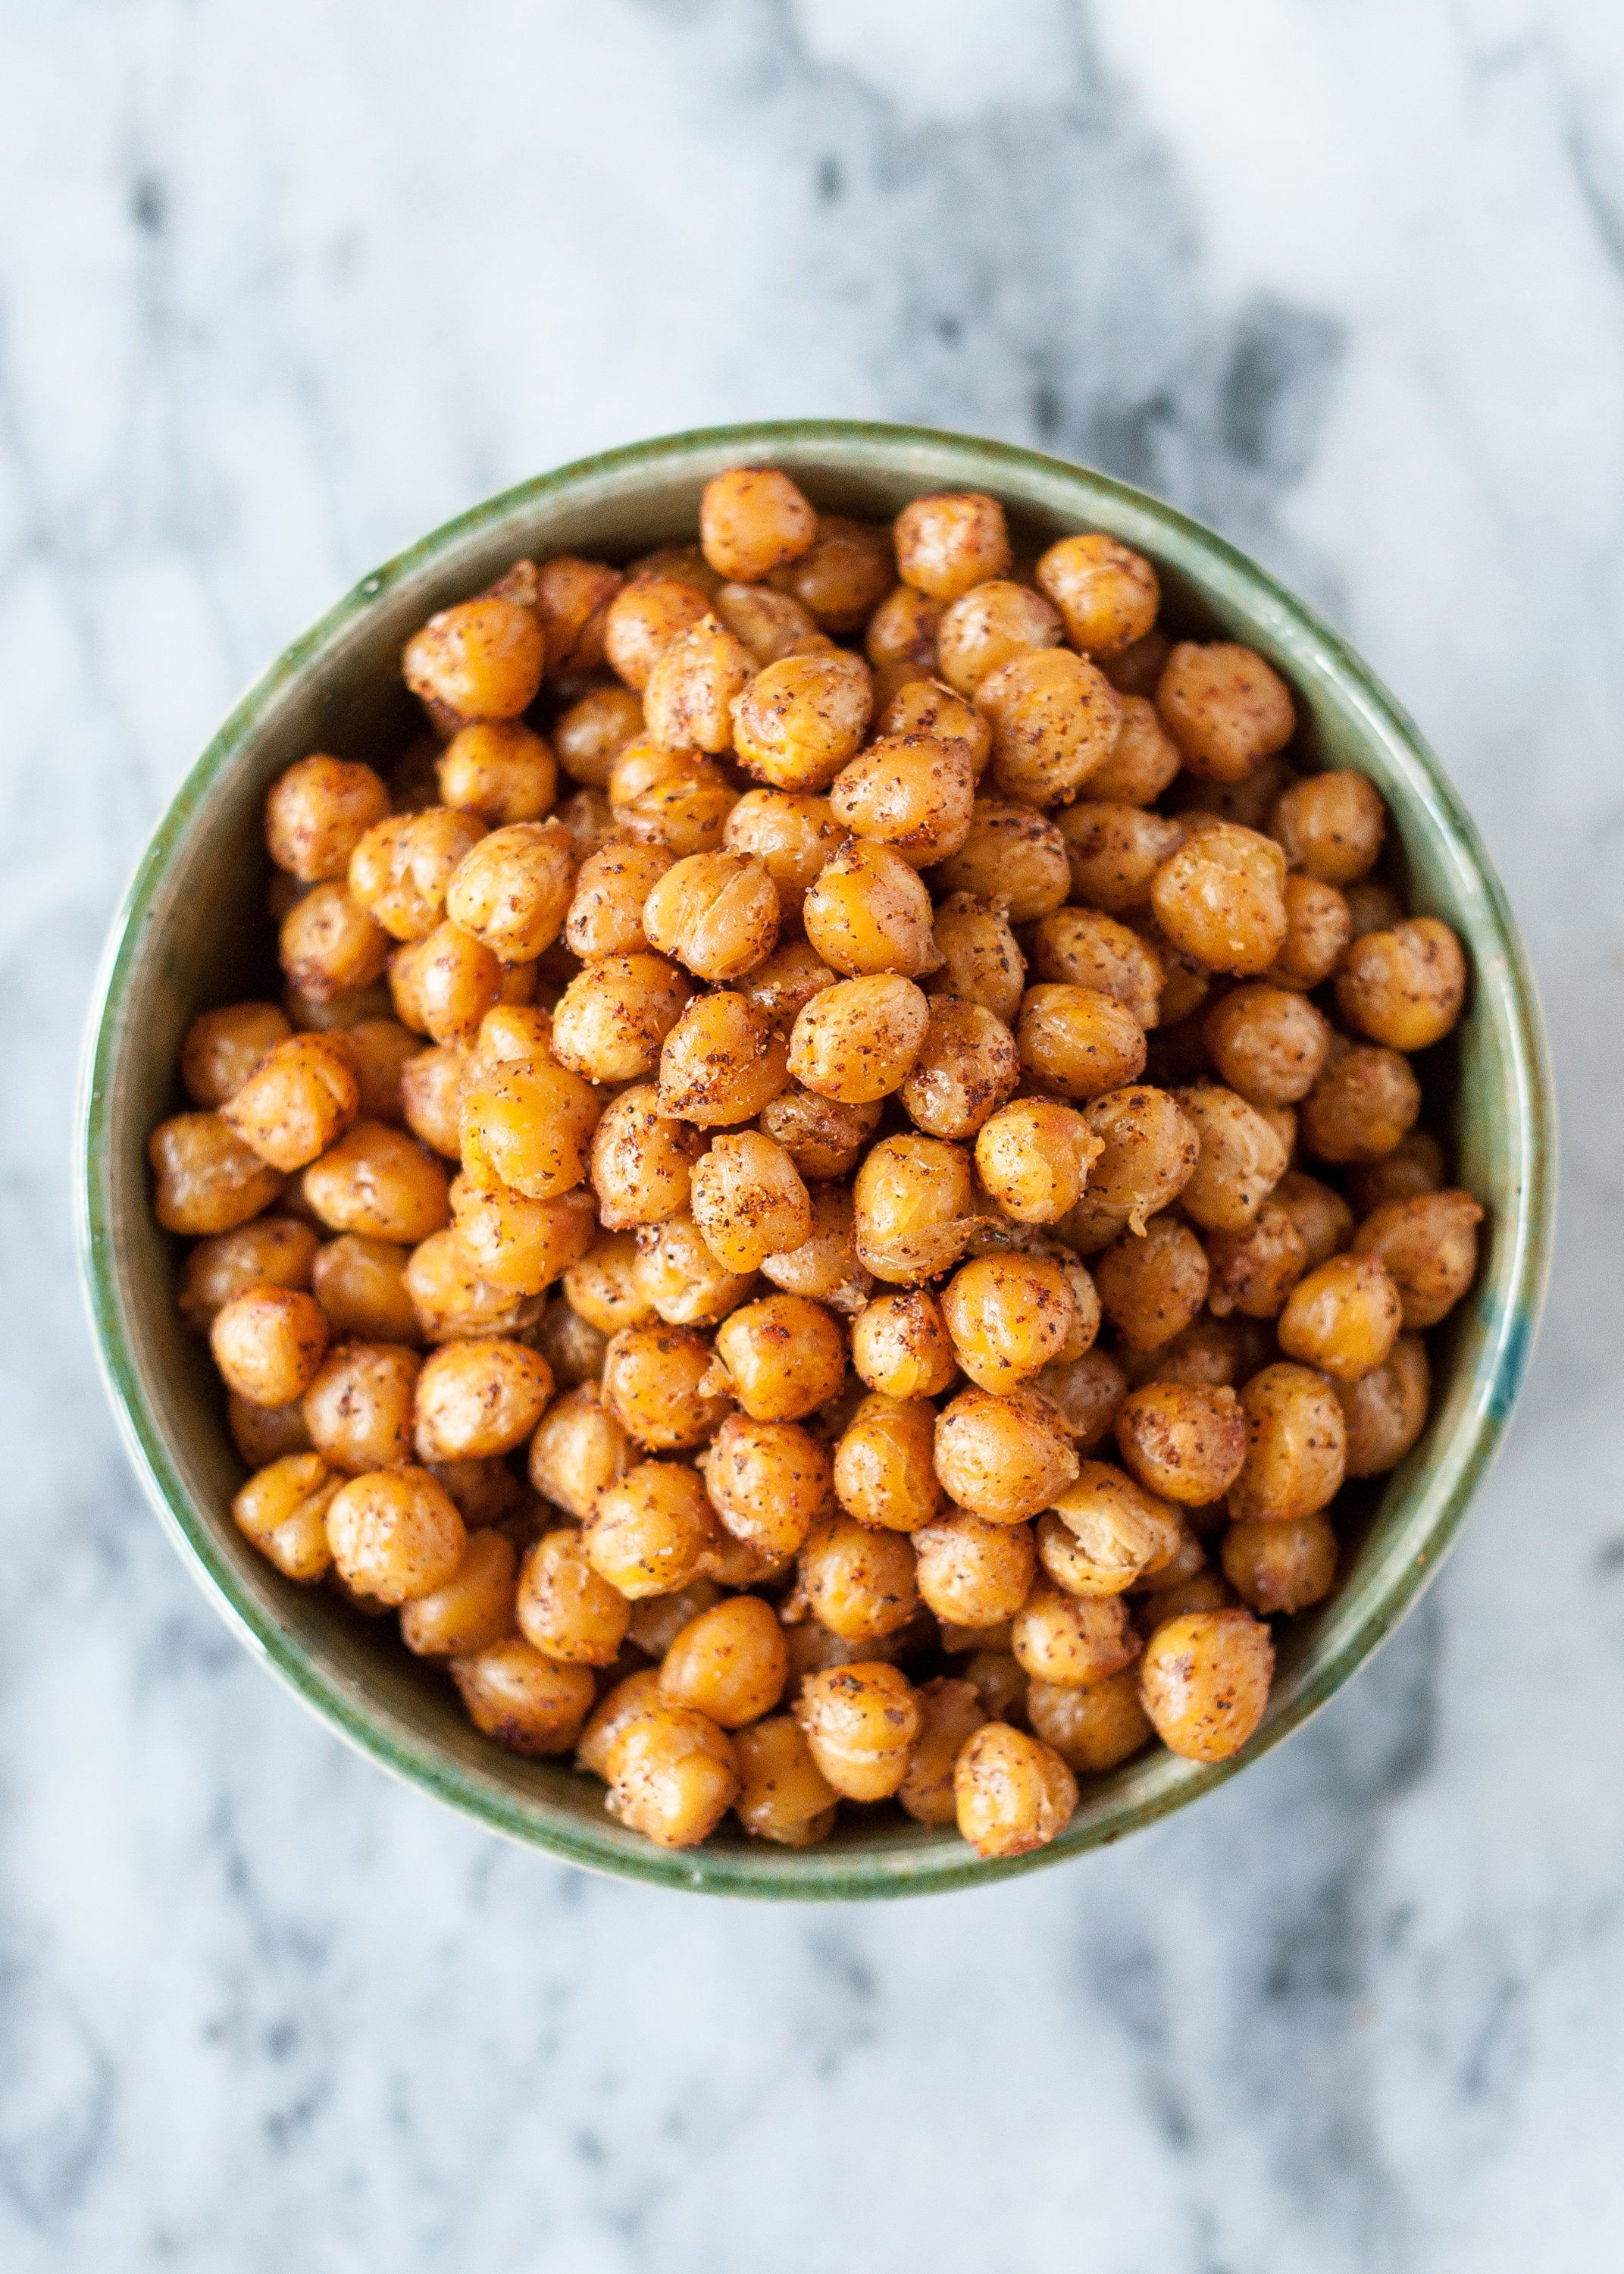 How To Make Crispy Roasted Chickpeas In The Oven Kitchn